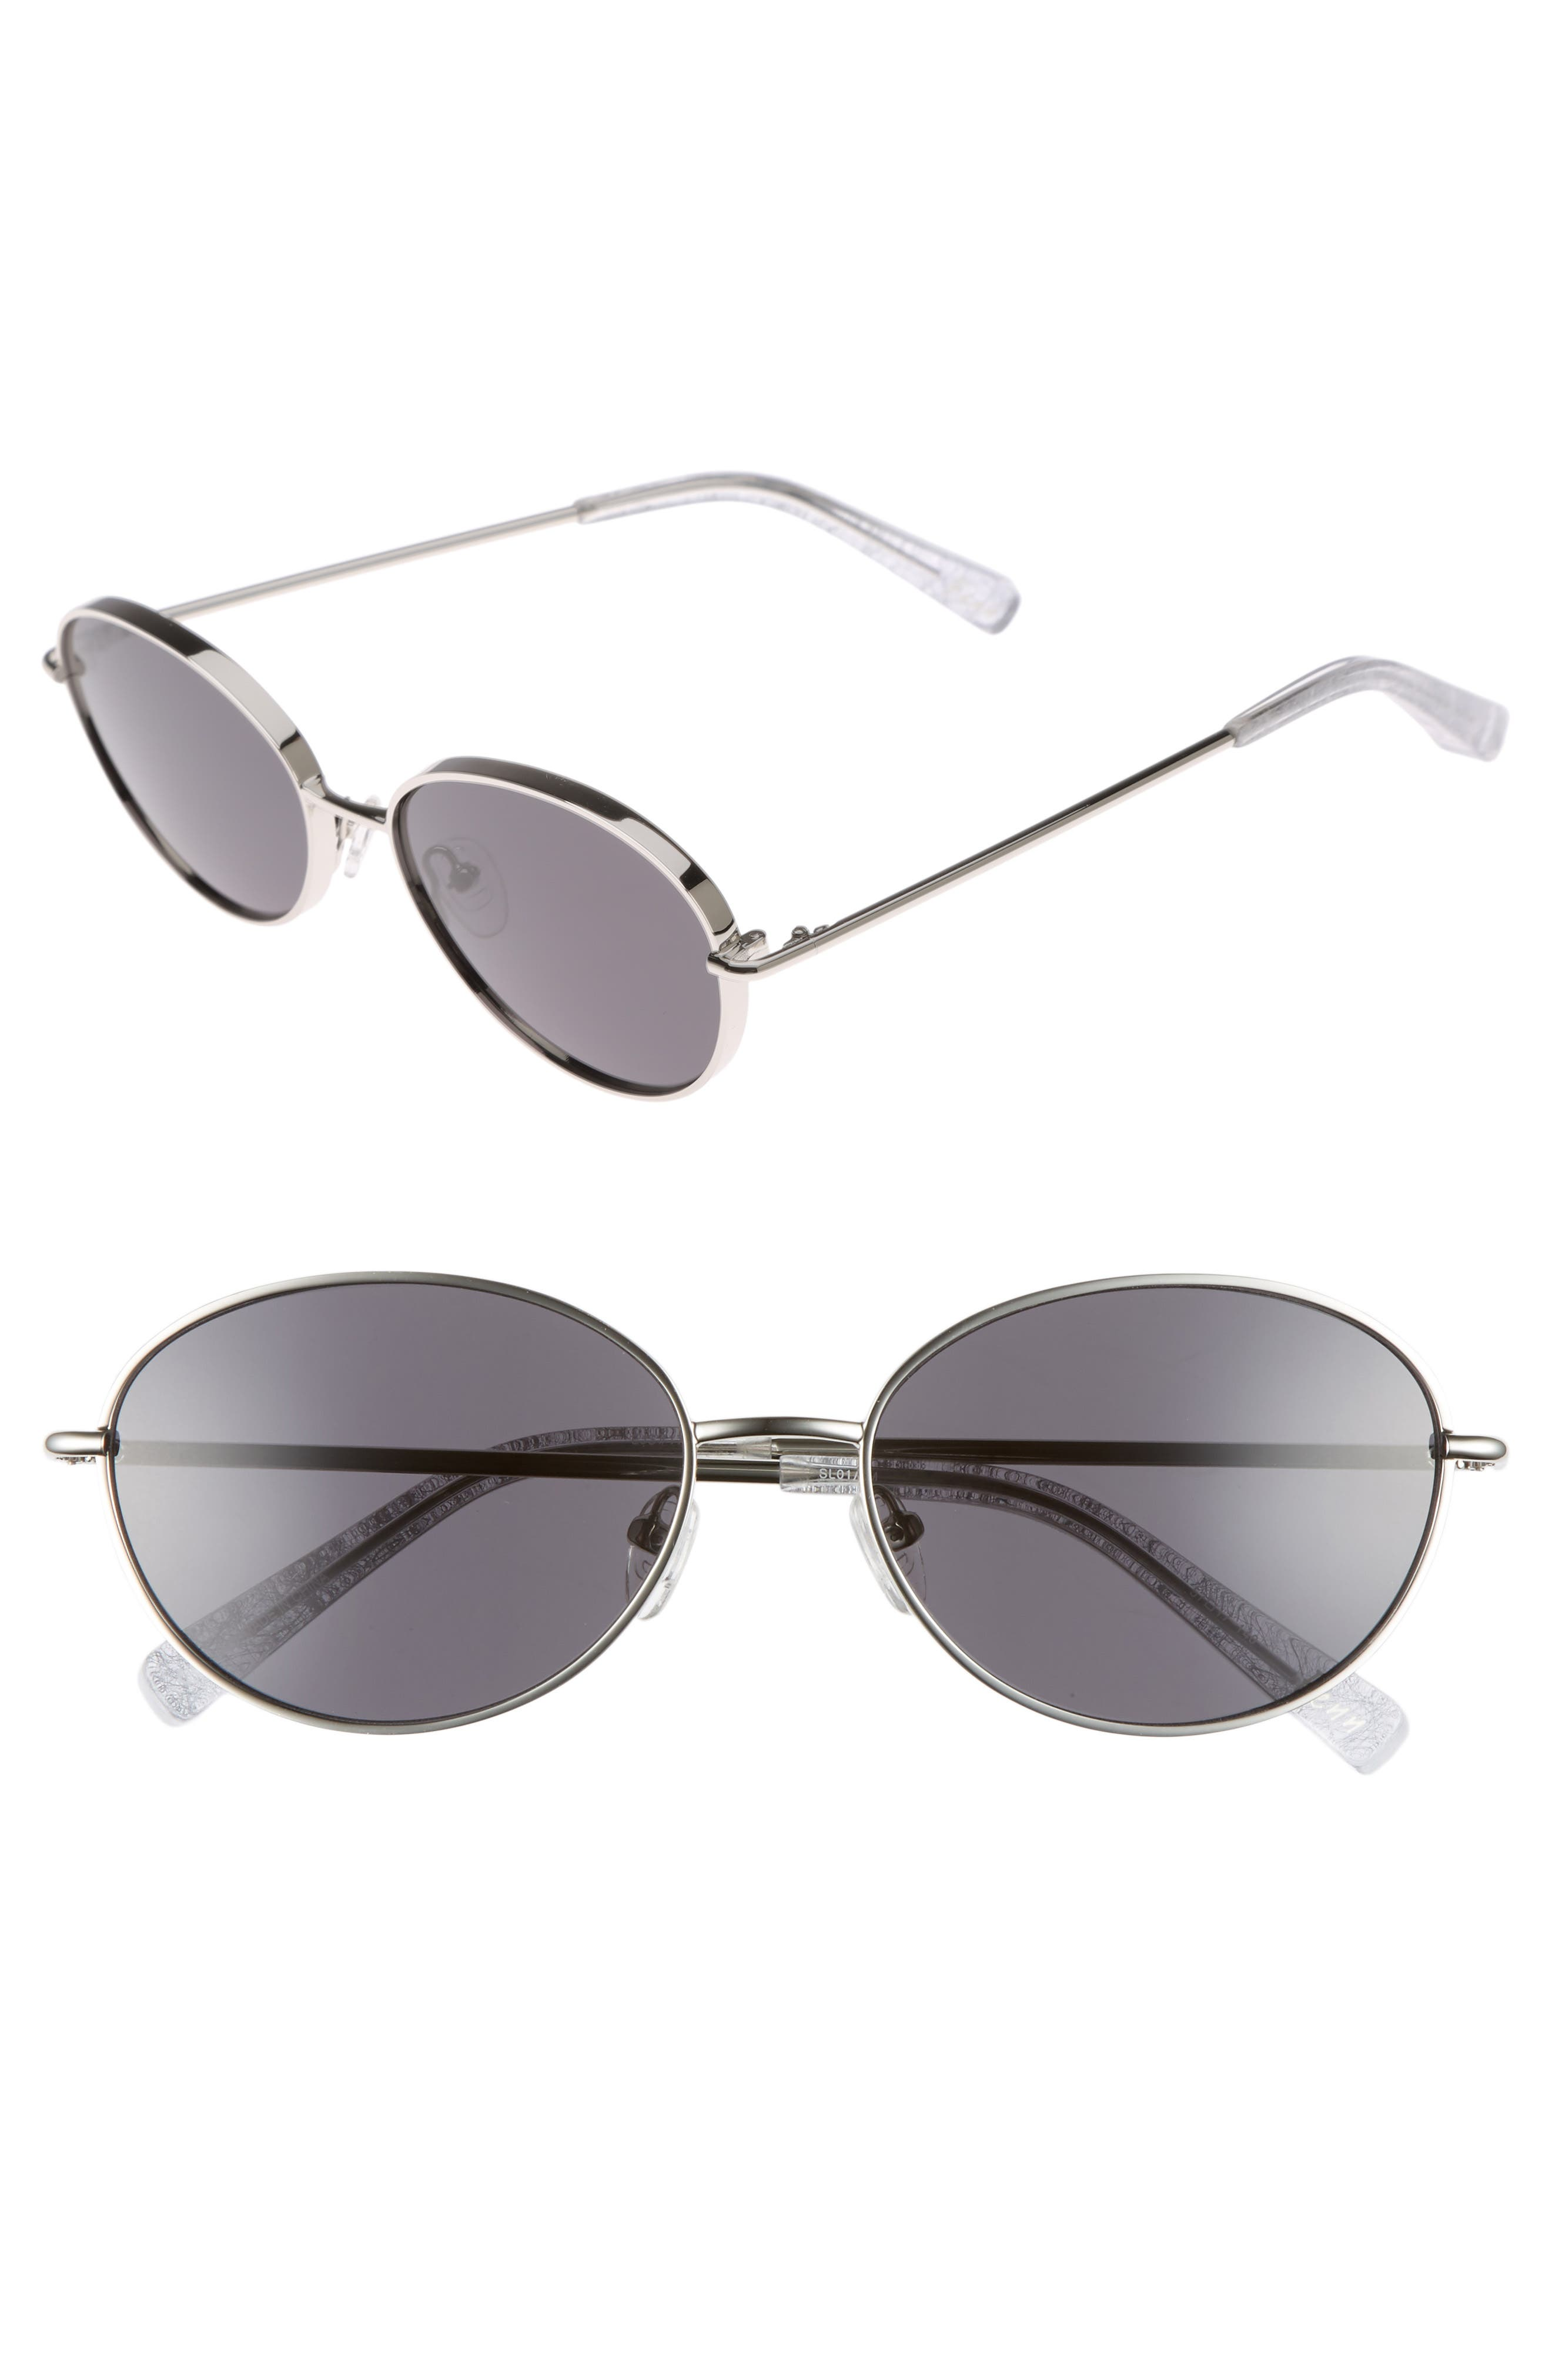 Elizabeth and James Fenn 57mm Oval Sunglasses